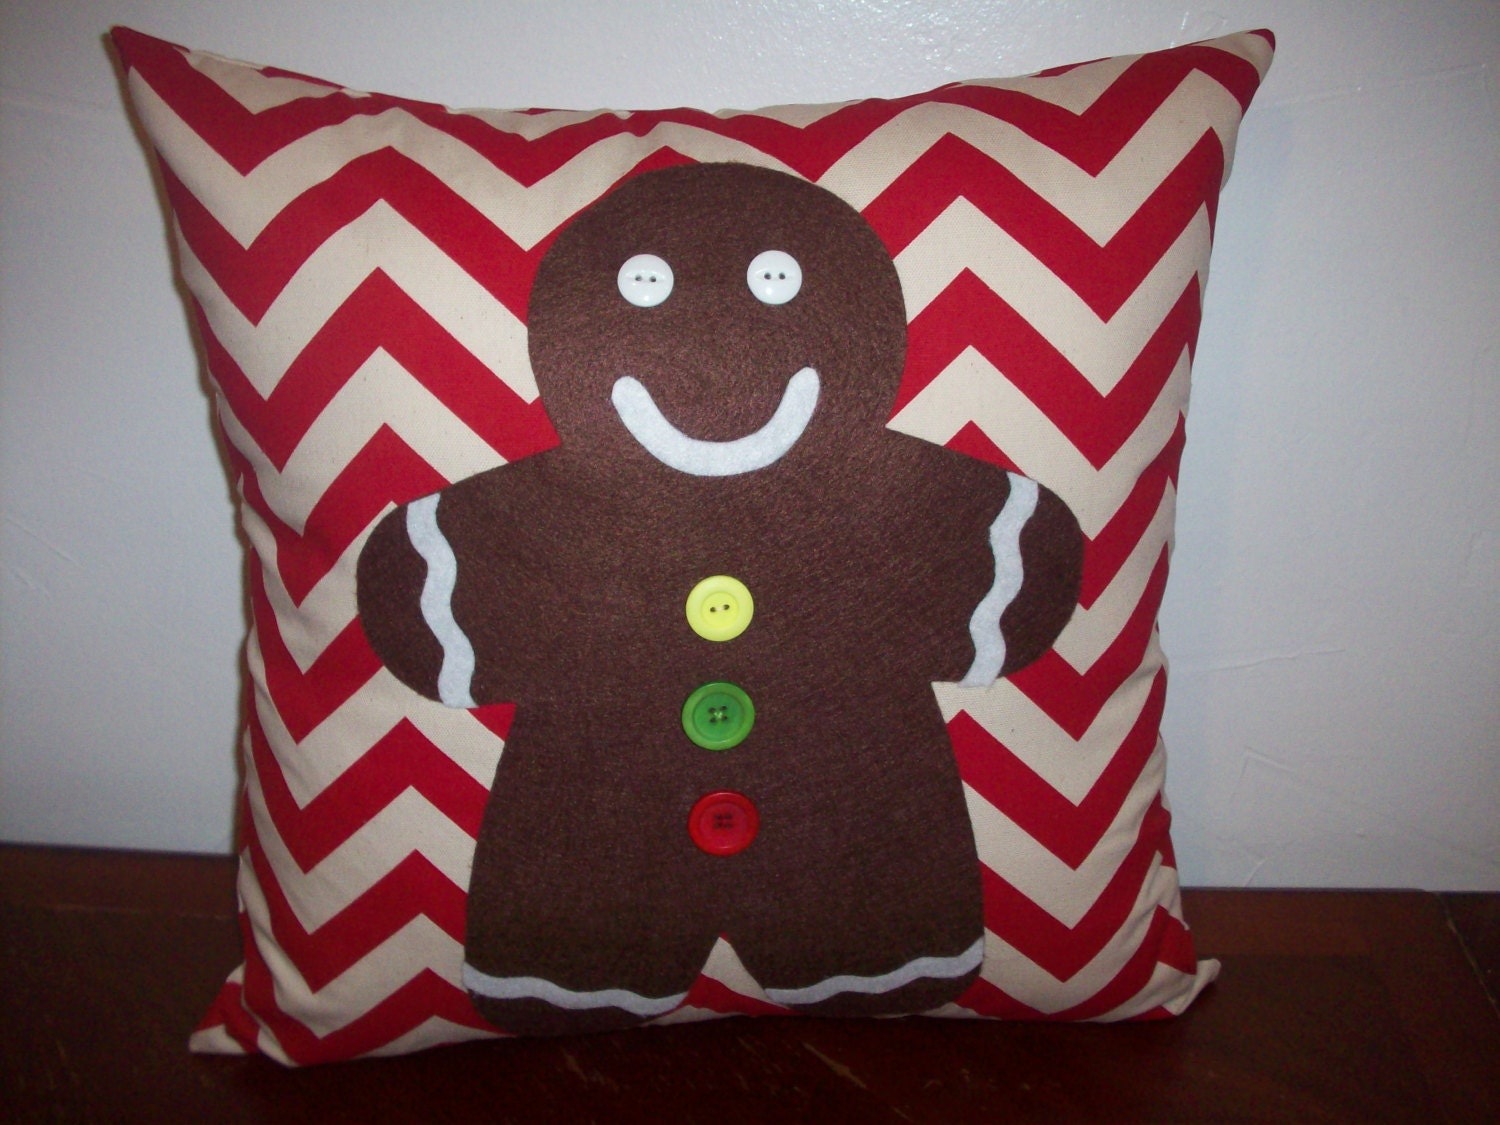 Christmas Pillow Covers 26x26: Gingerbread Man Pillow Cover  Christmas Pillow  Holiday Pillow    ,